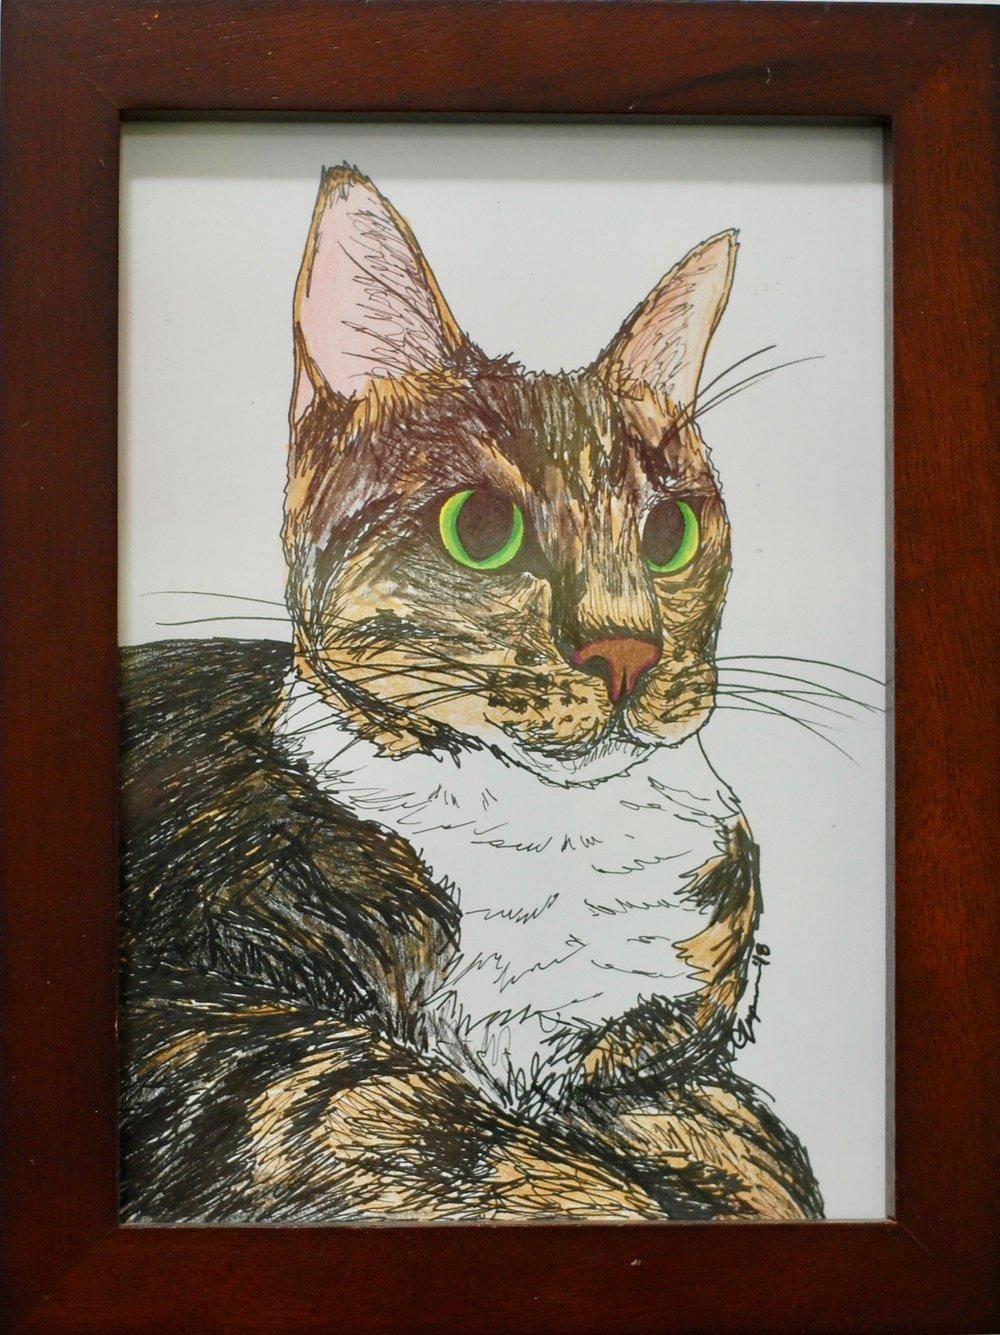 To help her find her family, Summer has been featured in our art show located at Cat Town. The piece has been donated by the artist and her lucky adopter will take home the piece to commemorate the occasion.